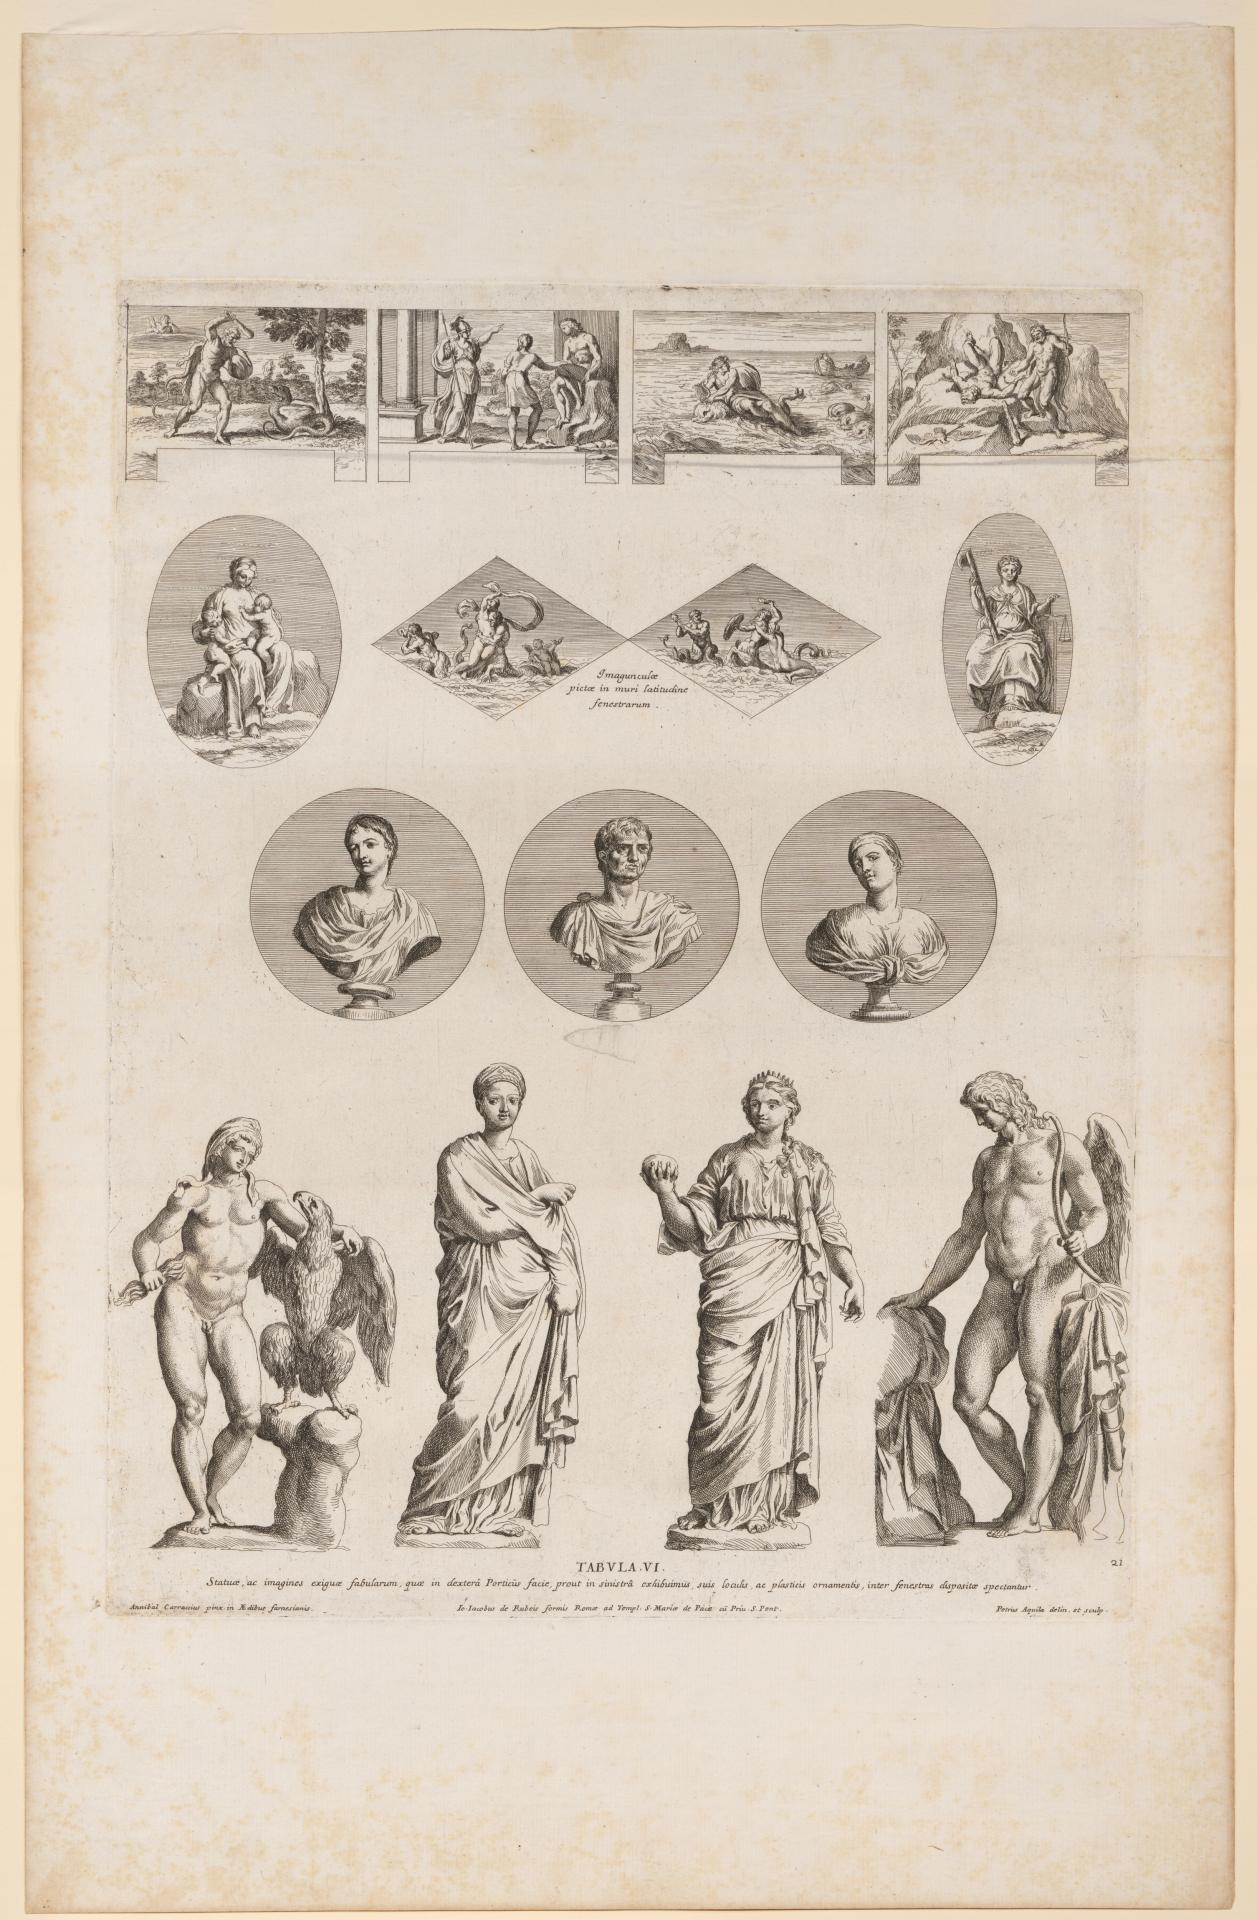 Panels and sculptures from the Farnese Gallery